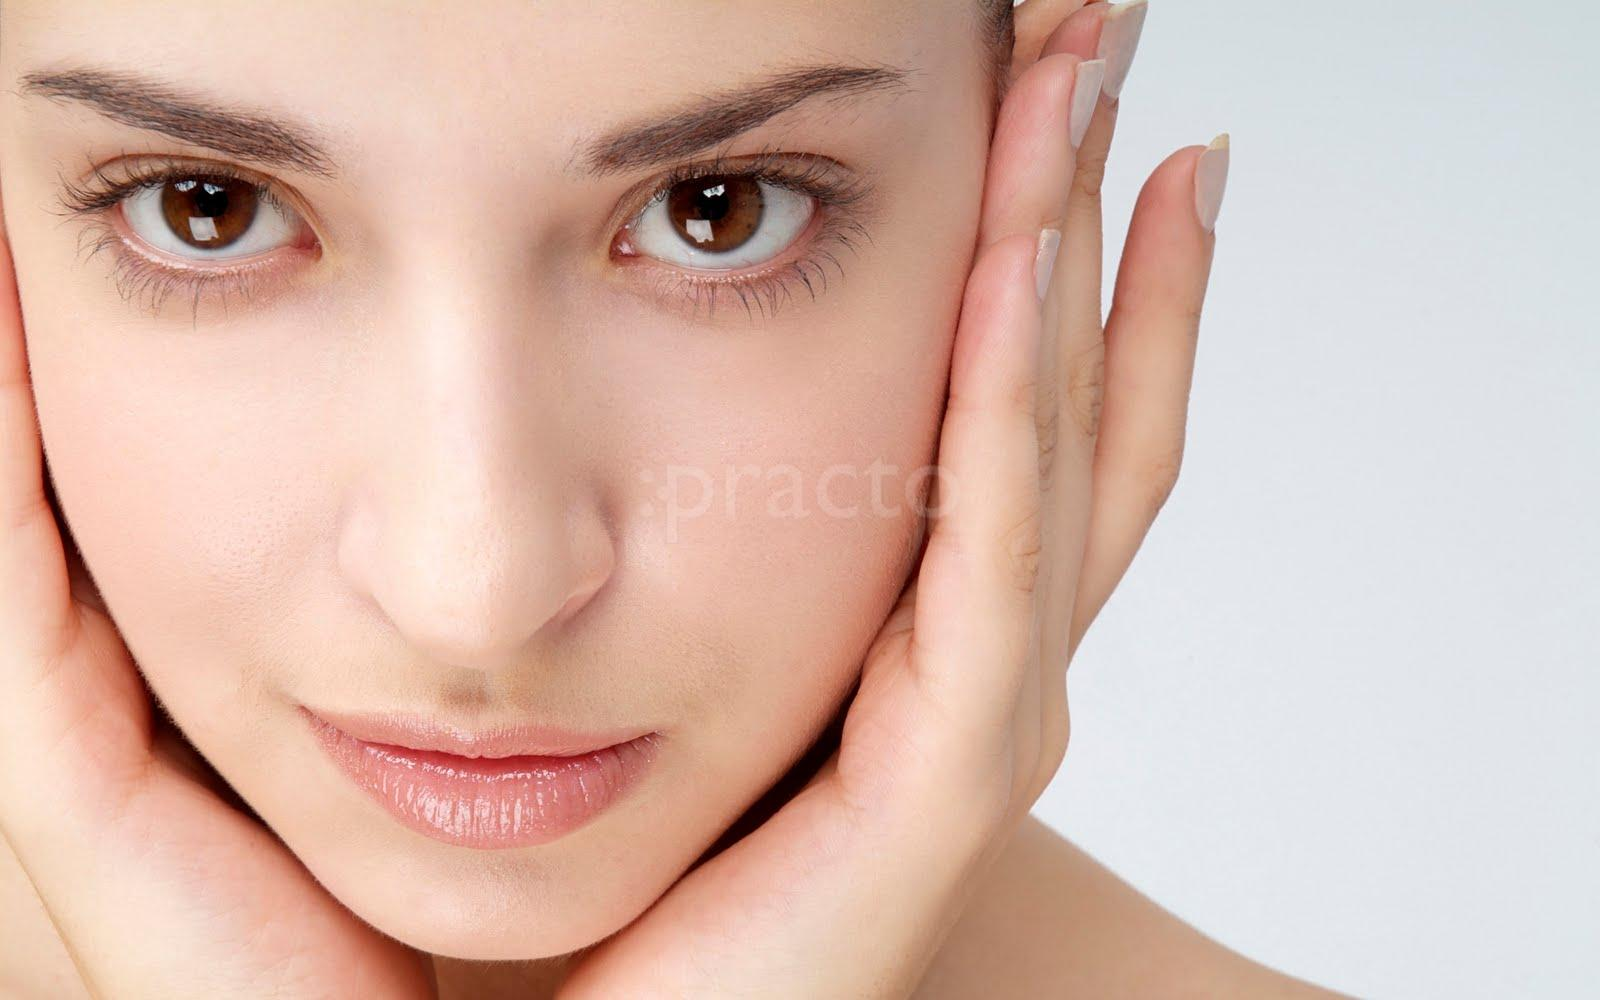 Lady Skin Specialists In Ameerpet, Hyderabad - Instant